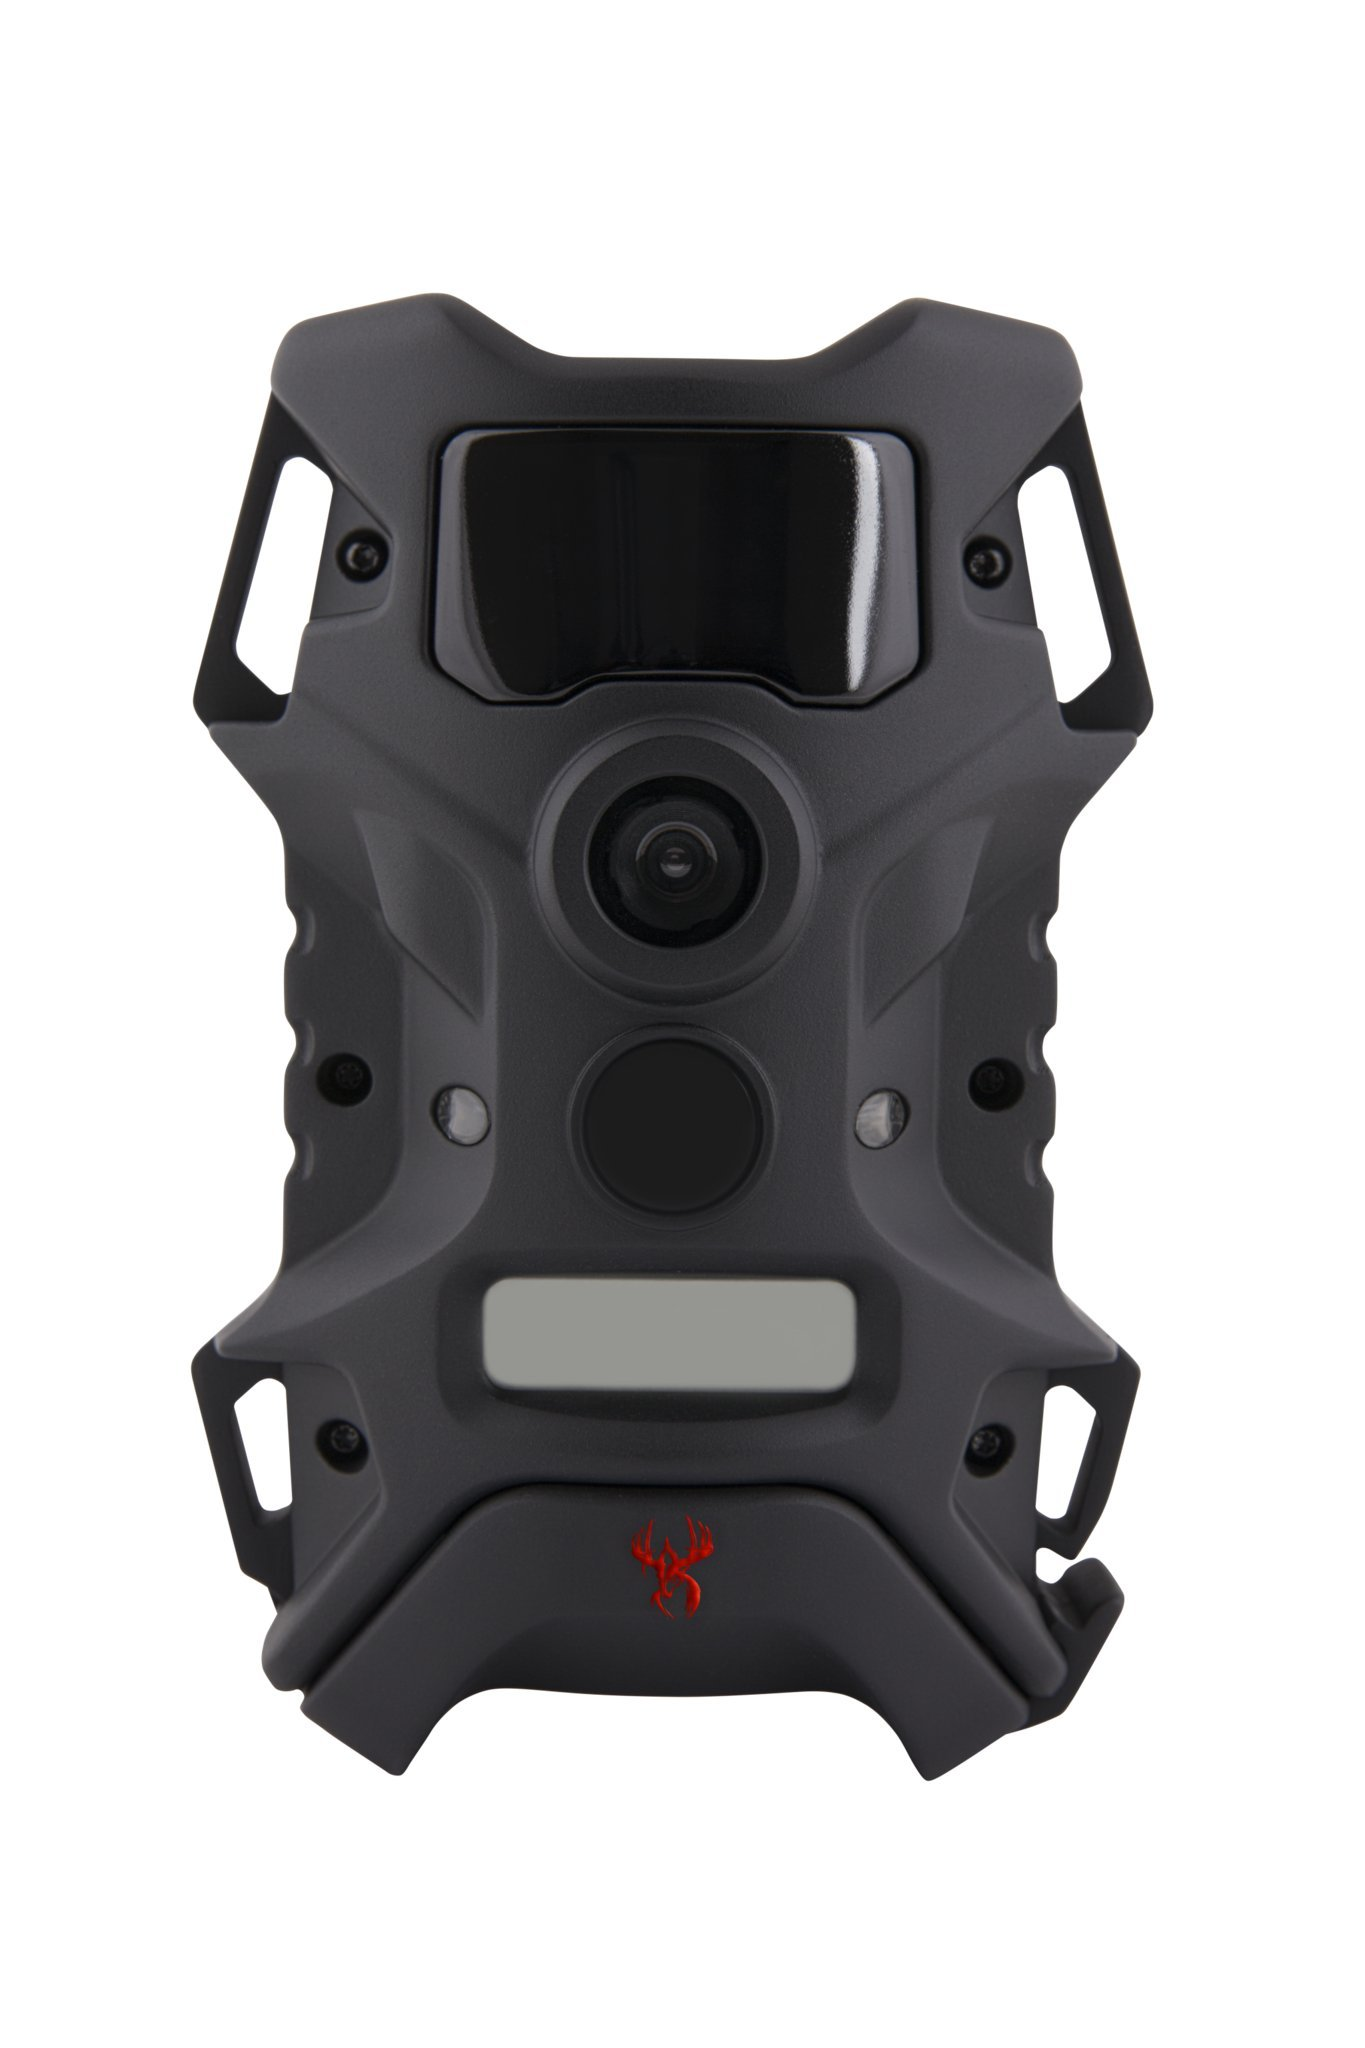 Wildgame Innovations Terra Extreme 10 Lights Out Black Flash Trail Camera by Wild Game Innovations